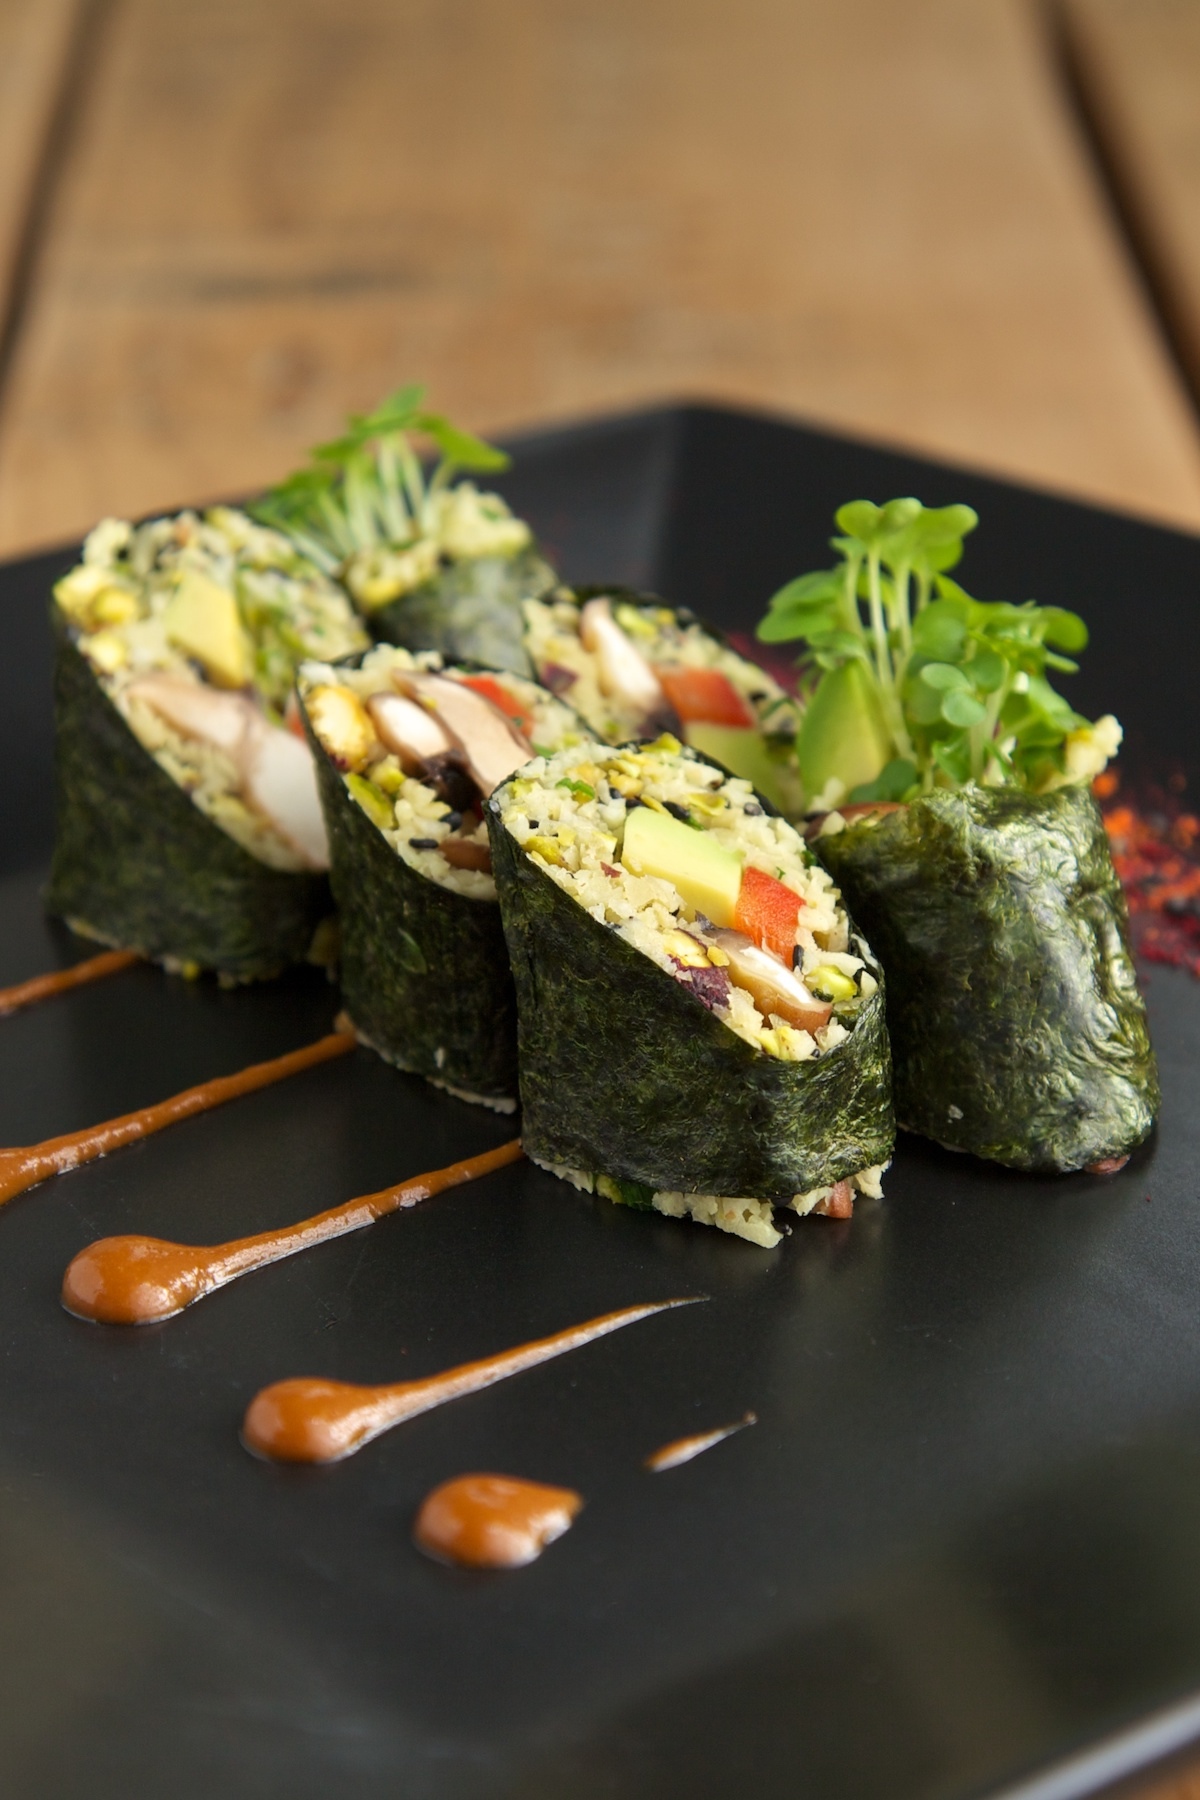 Raw vegan sushi with miso sauce on a black plate